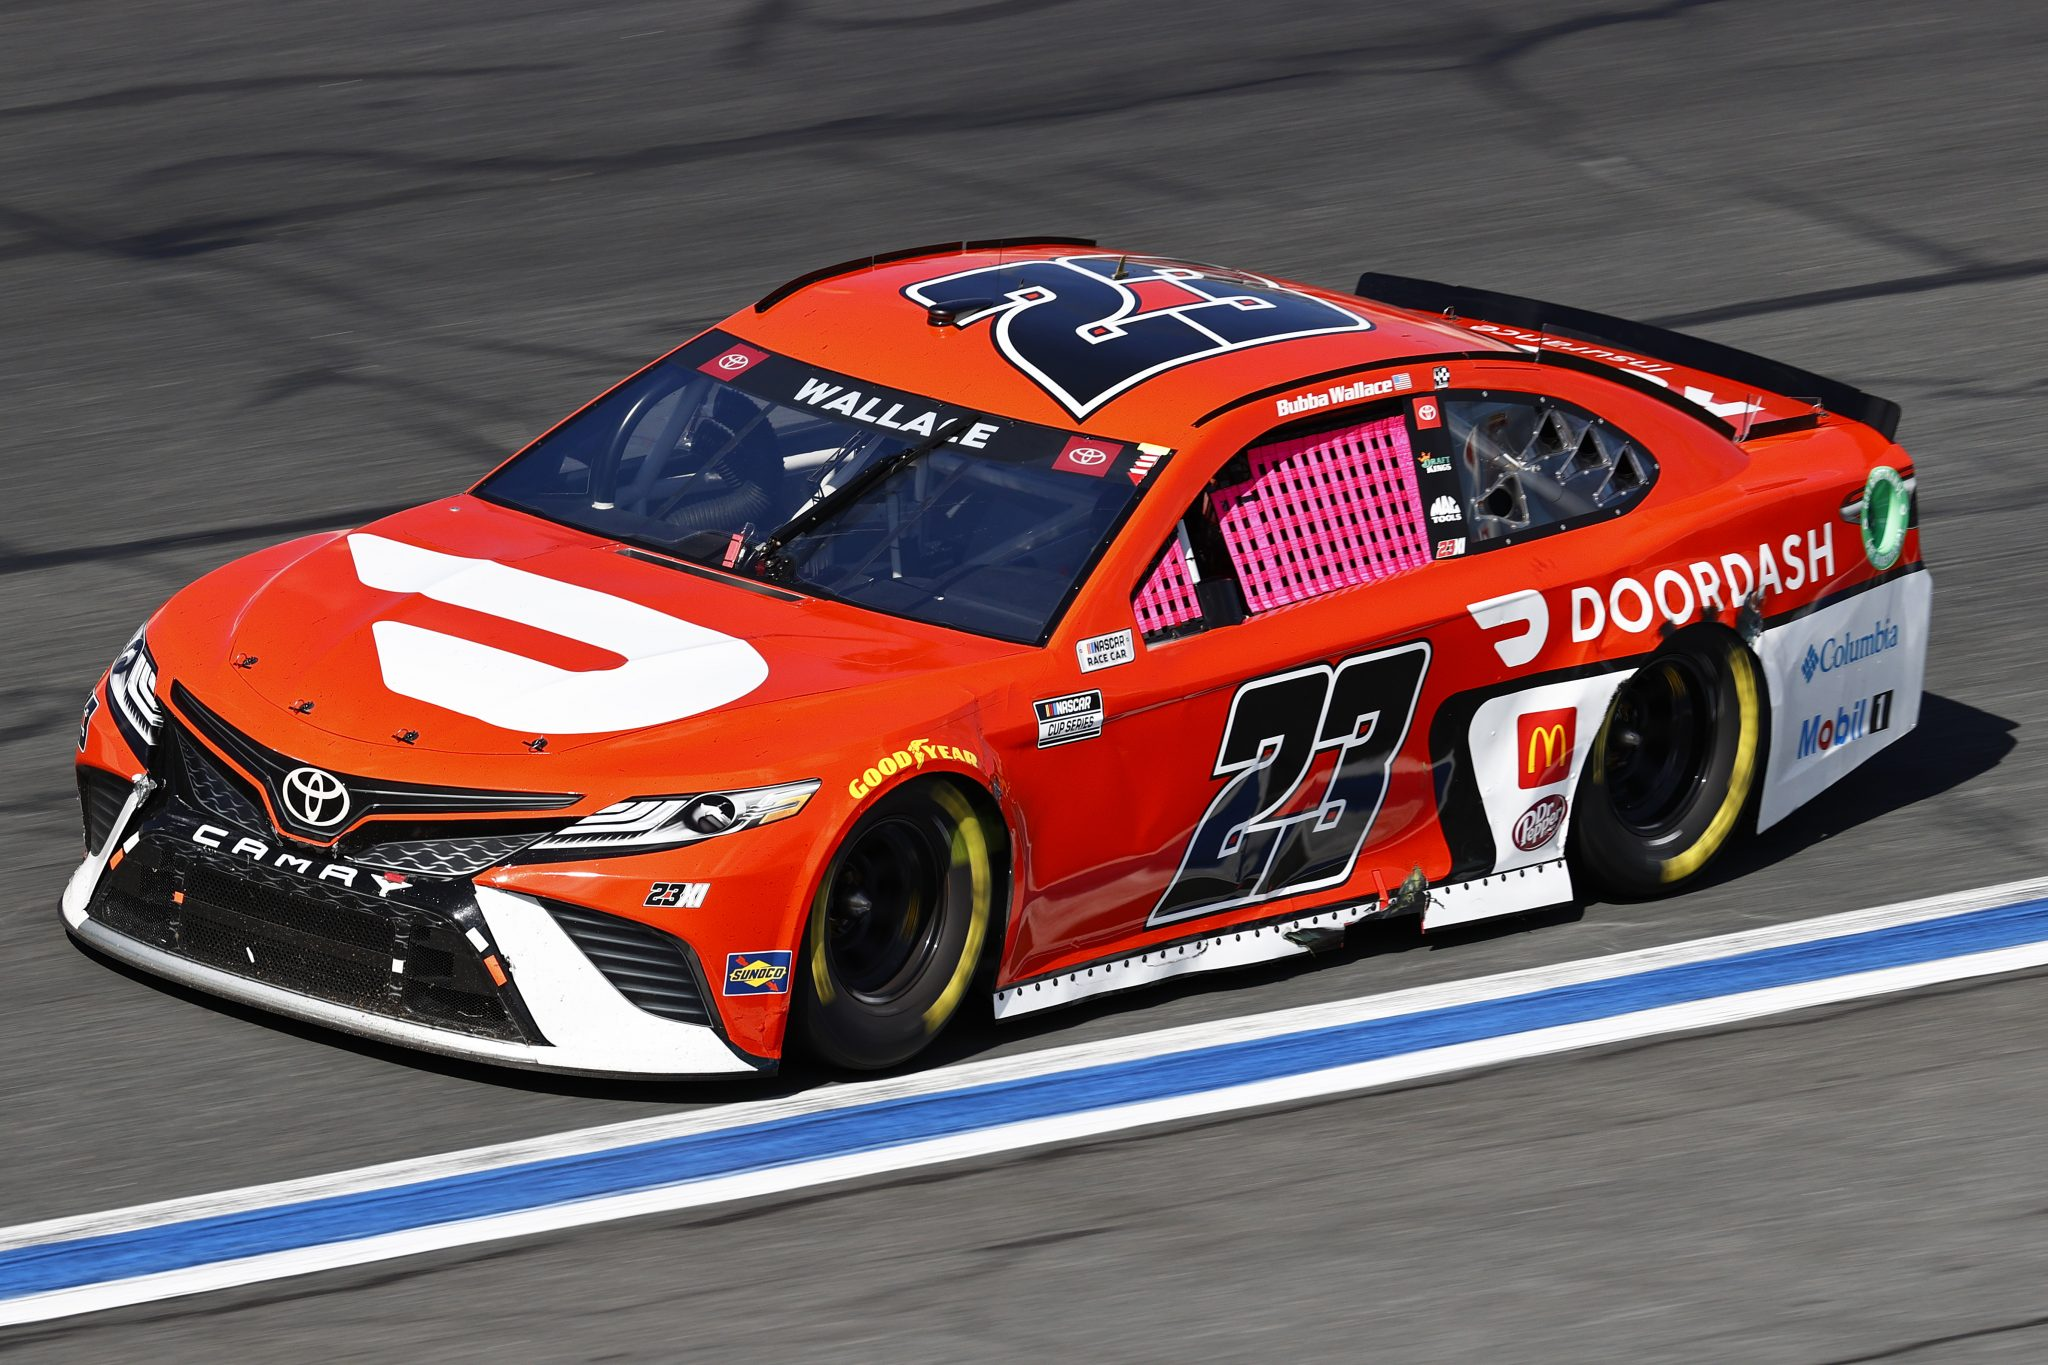 CONCORD, NORTH CAROLINA - OCTOBER 10: Bubba Wallace, driver of the #23 Door Dash Toyota, drives during the NASCAR Cup Series Bank of America ROVAL 400 at Charlotte Motor Speedway on October 10, 2021 in Concord, North Carolina. (Photo by Jared C. Tilton/Getty Images) | Getty Images